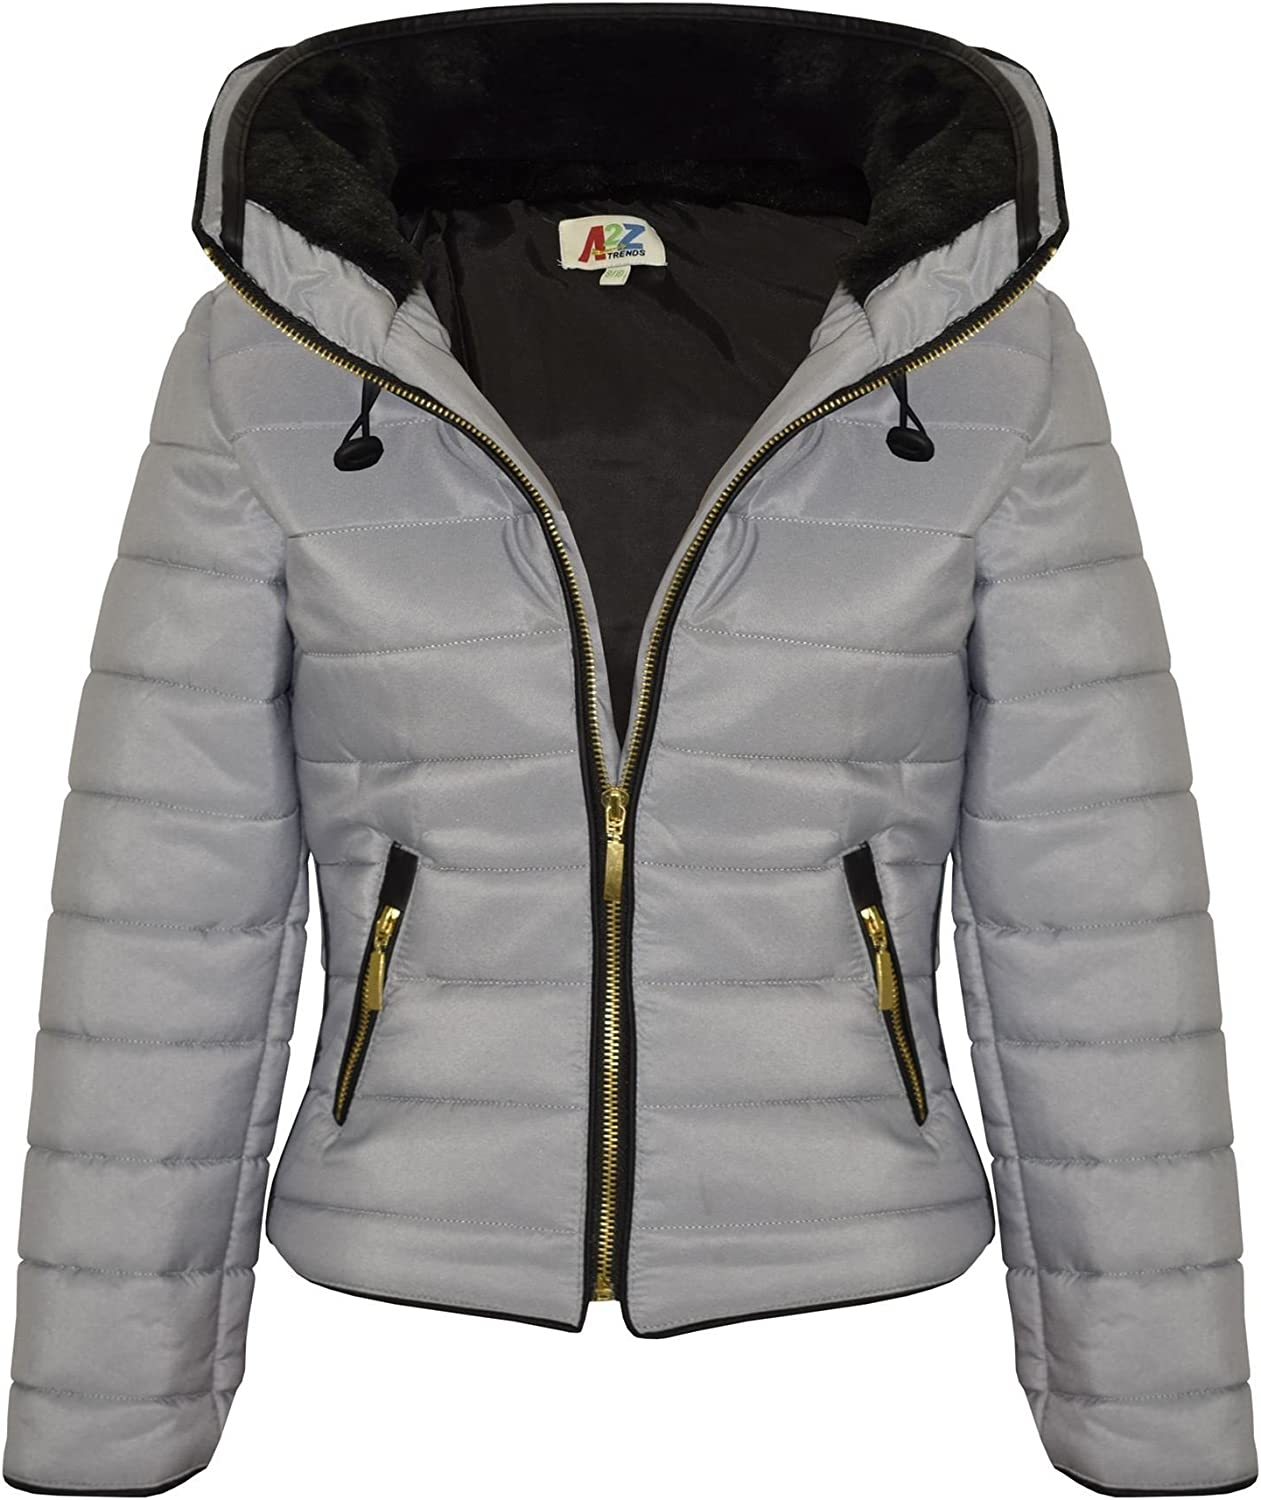 A2Z 4 Kids/® Girls Jacket Kids Stylish Padded Silver Puffer Bubble Faux Fur Collar Quilted Warm Thick Coat Jackets Age 3 4 5 6 7 8 9 10 11 12 13 Years